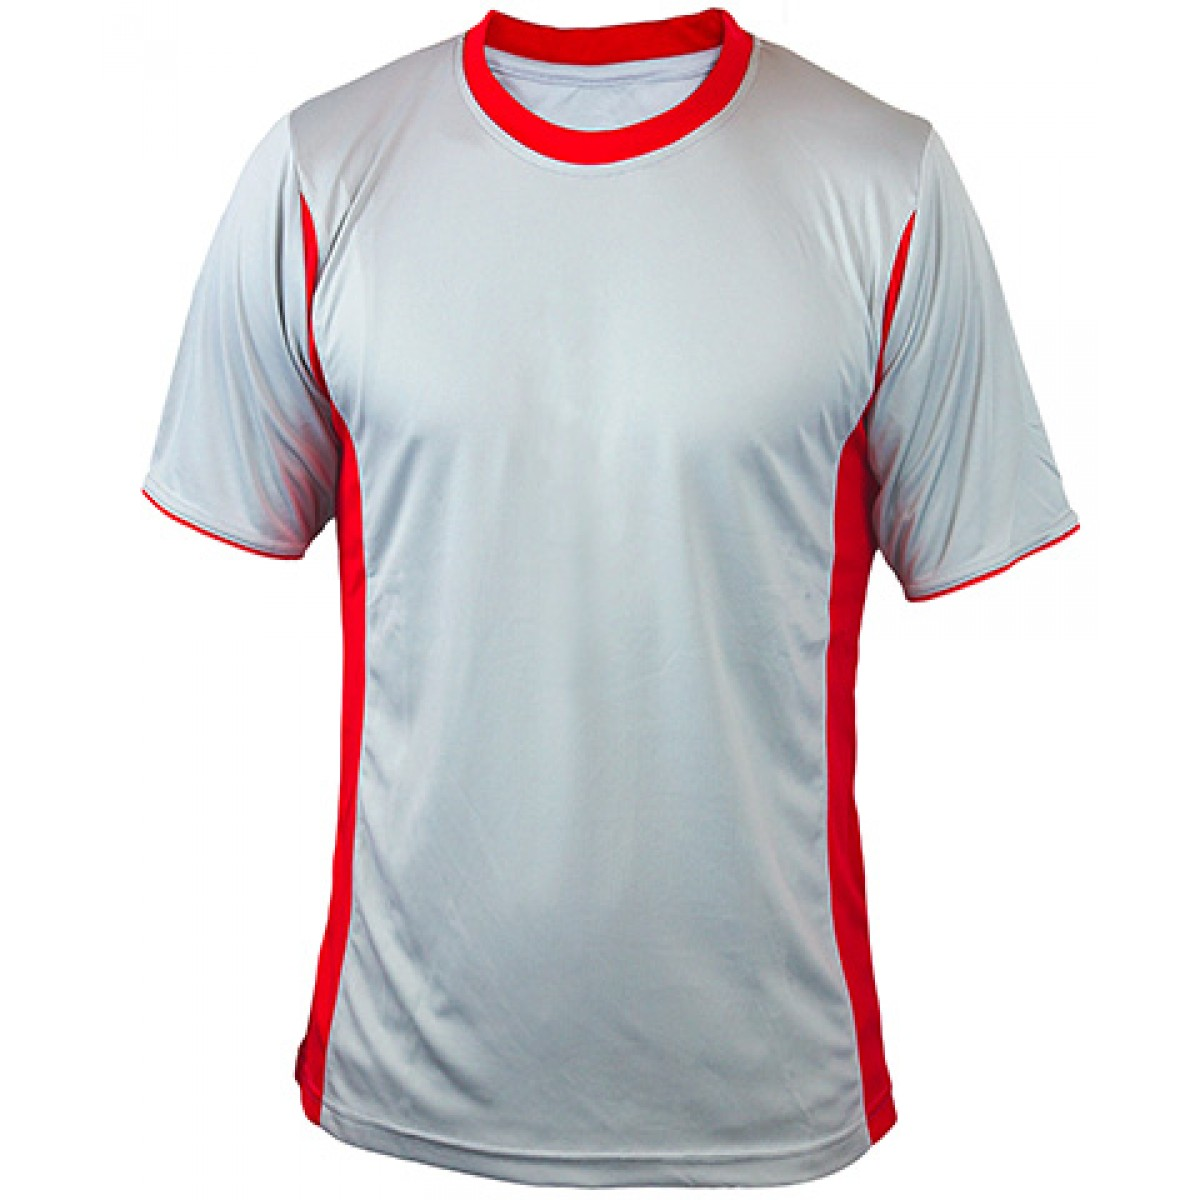 Gray Short Sleeves Performance With Red Side Insert-Gray/Red-YM